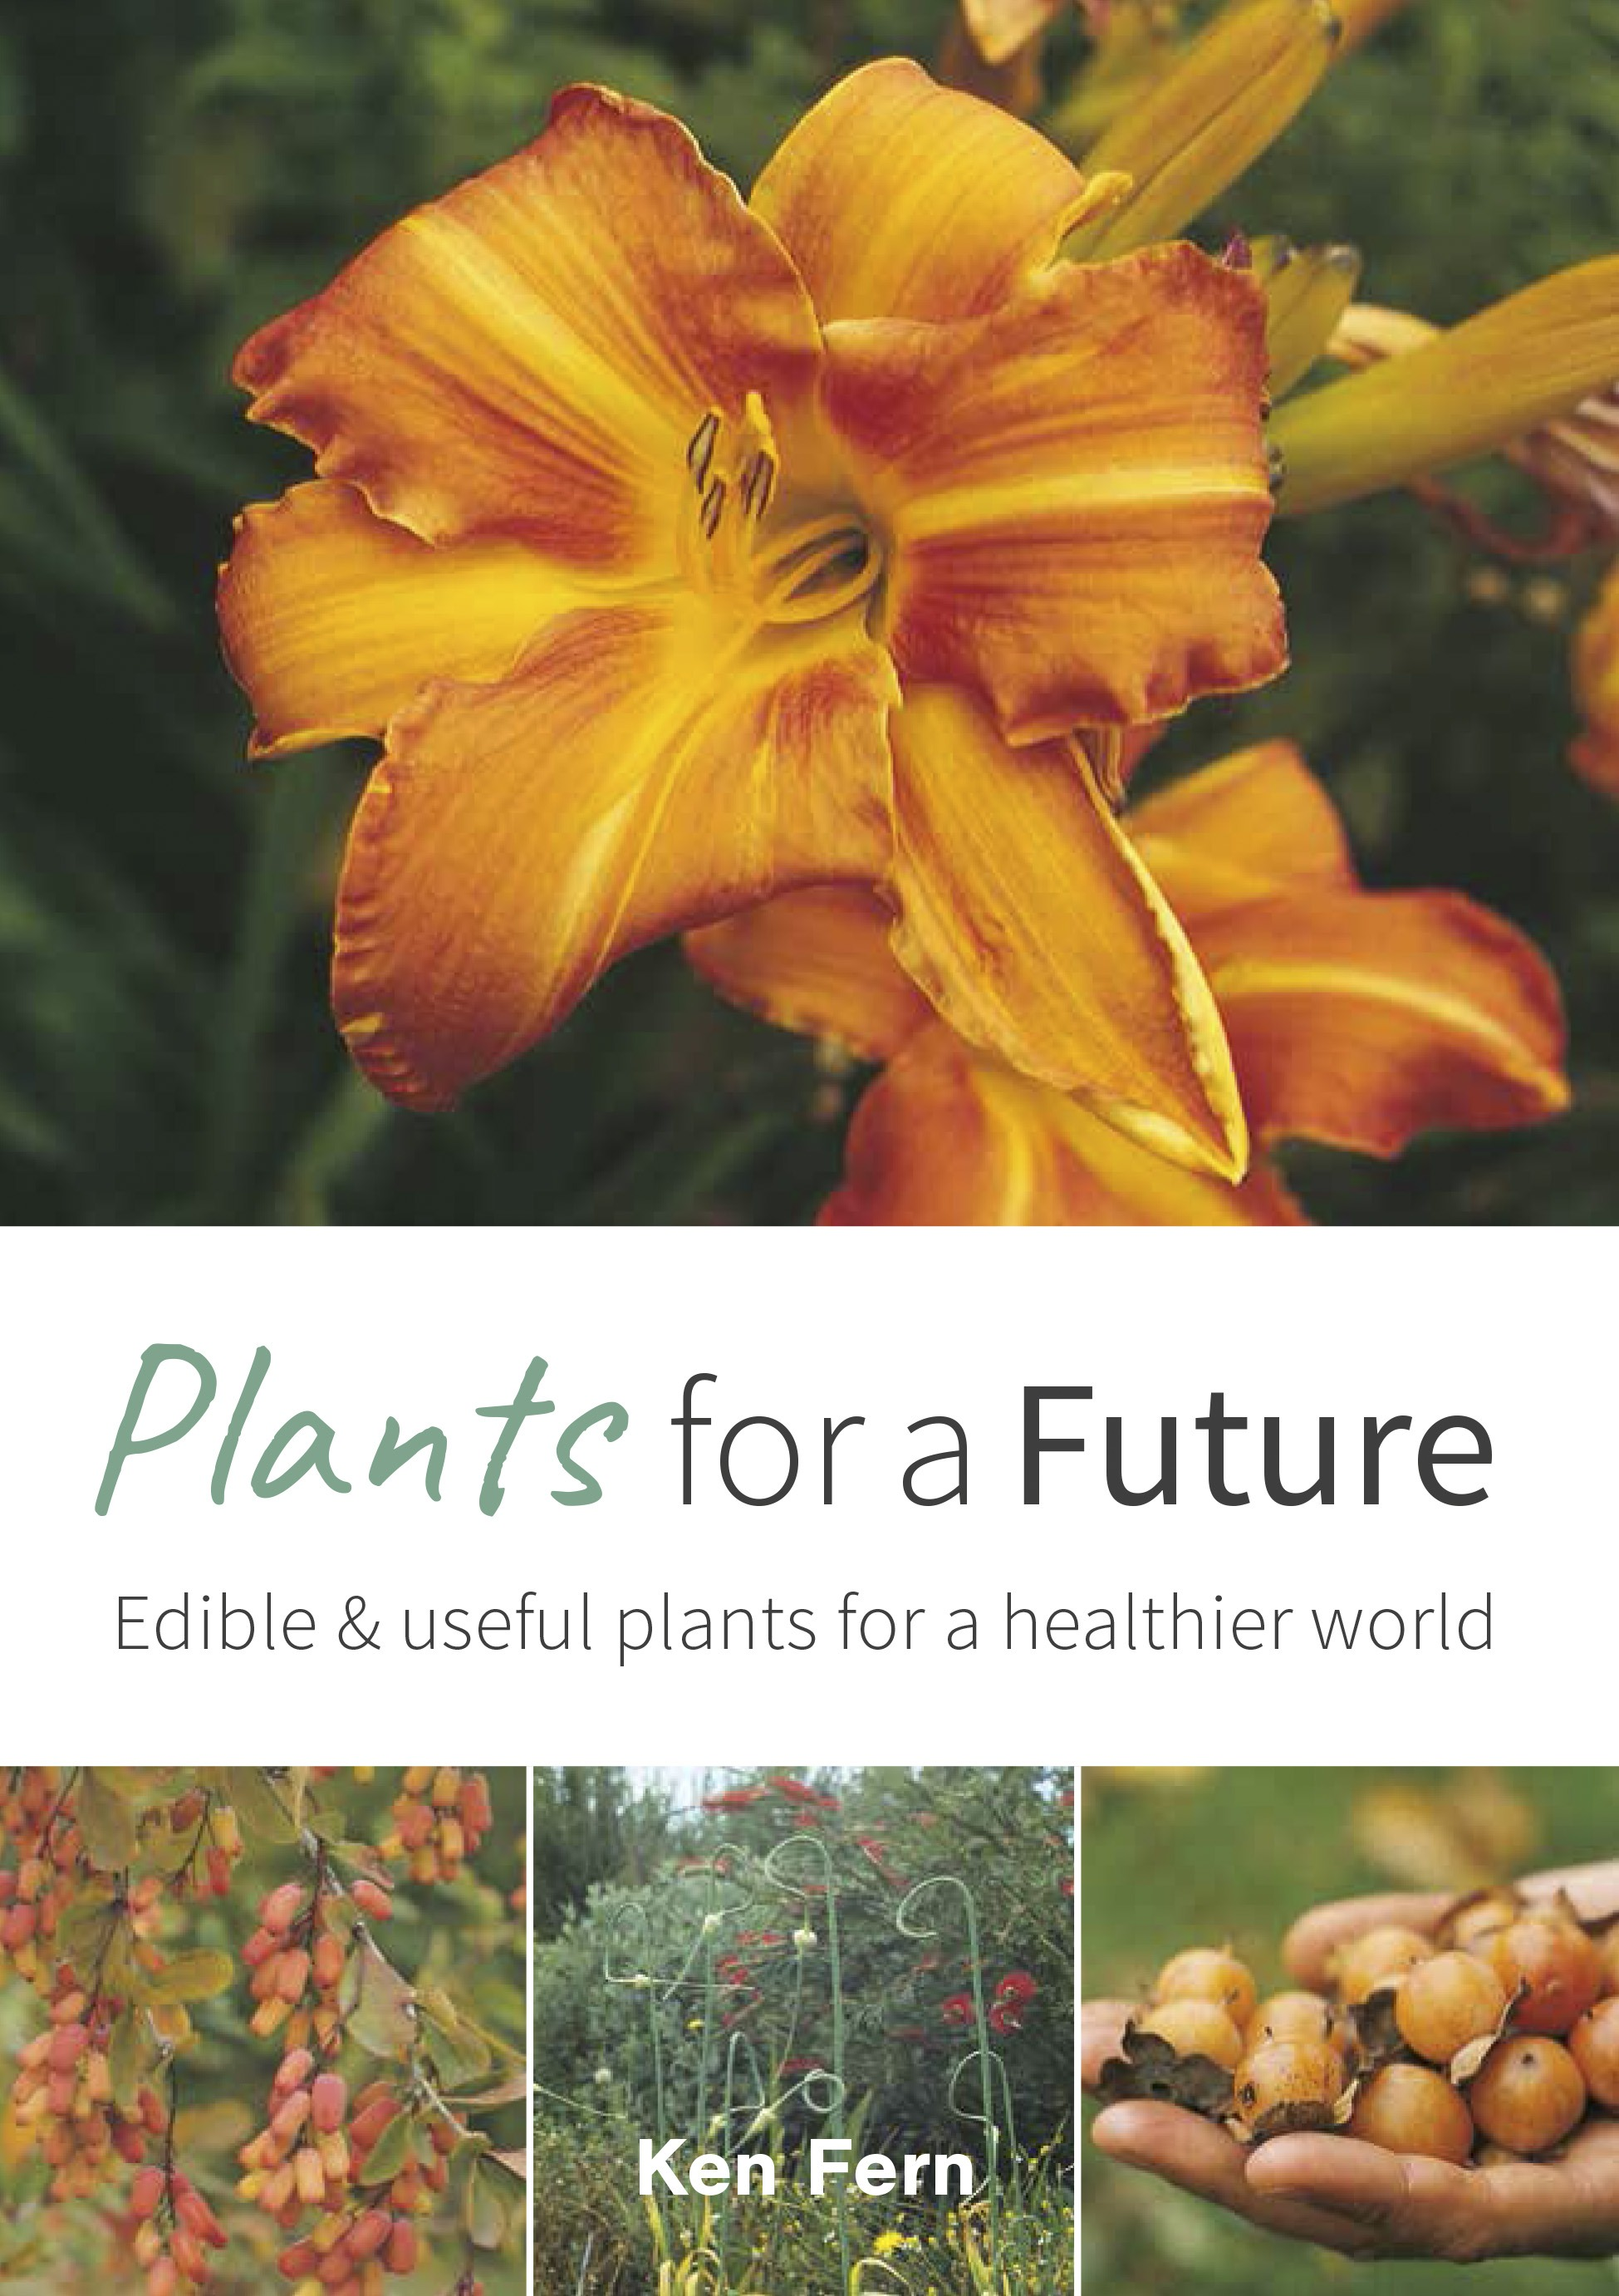 Plants For a Future: Edible & Useful Plants for a Healthier World by Ken Fern